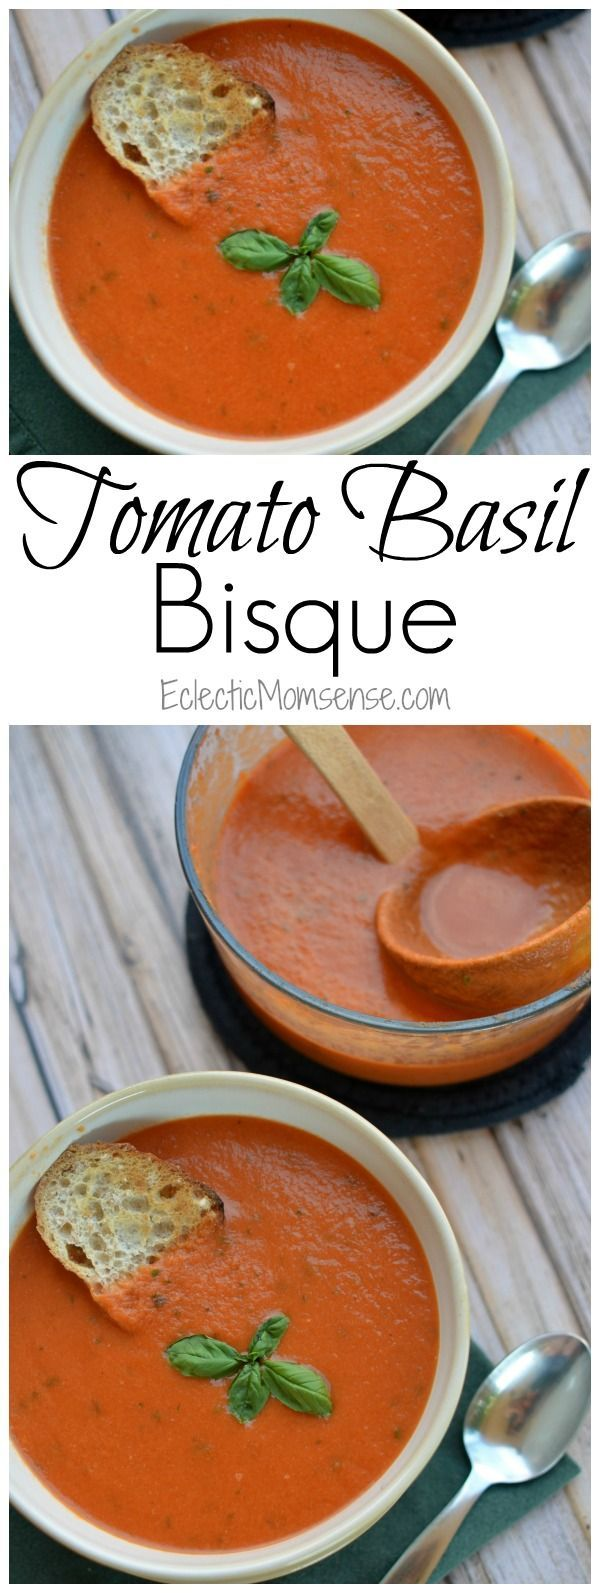 Tomato Basil Bisque | Creamy homemade tomato soup with fresh basil.